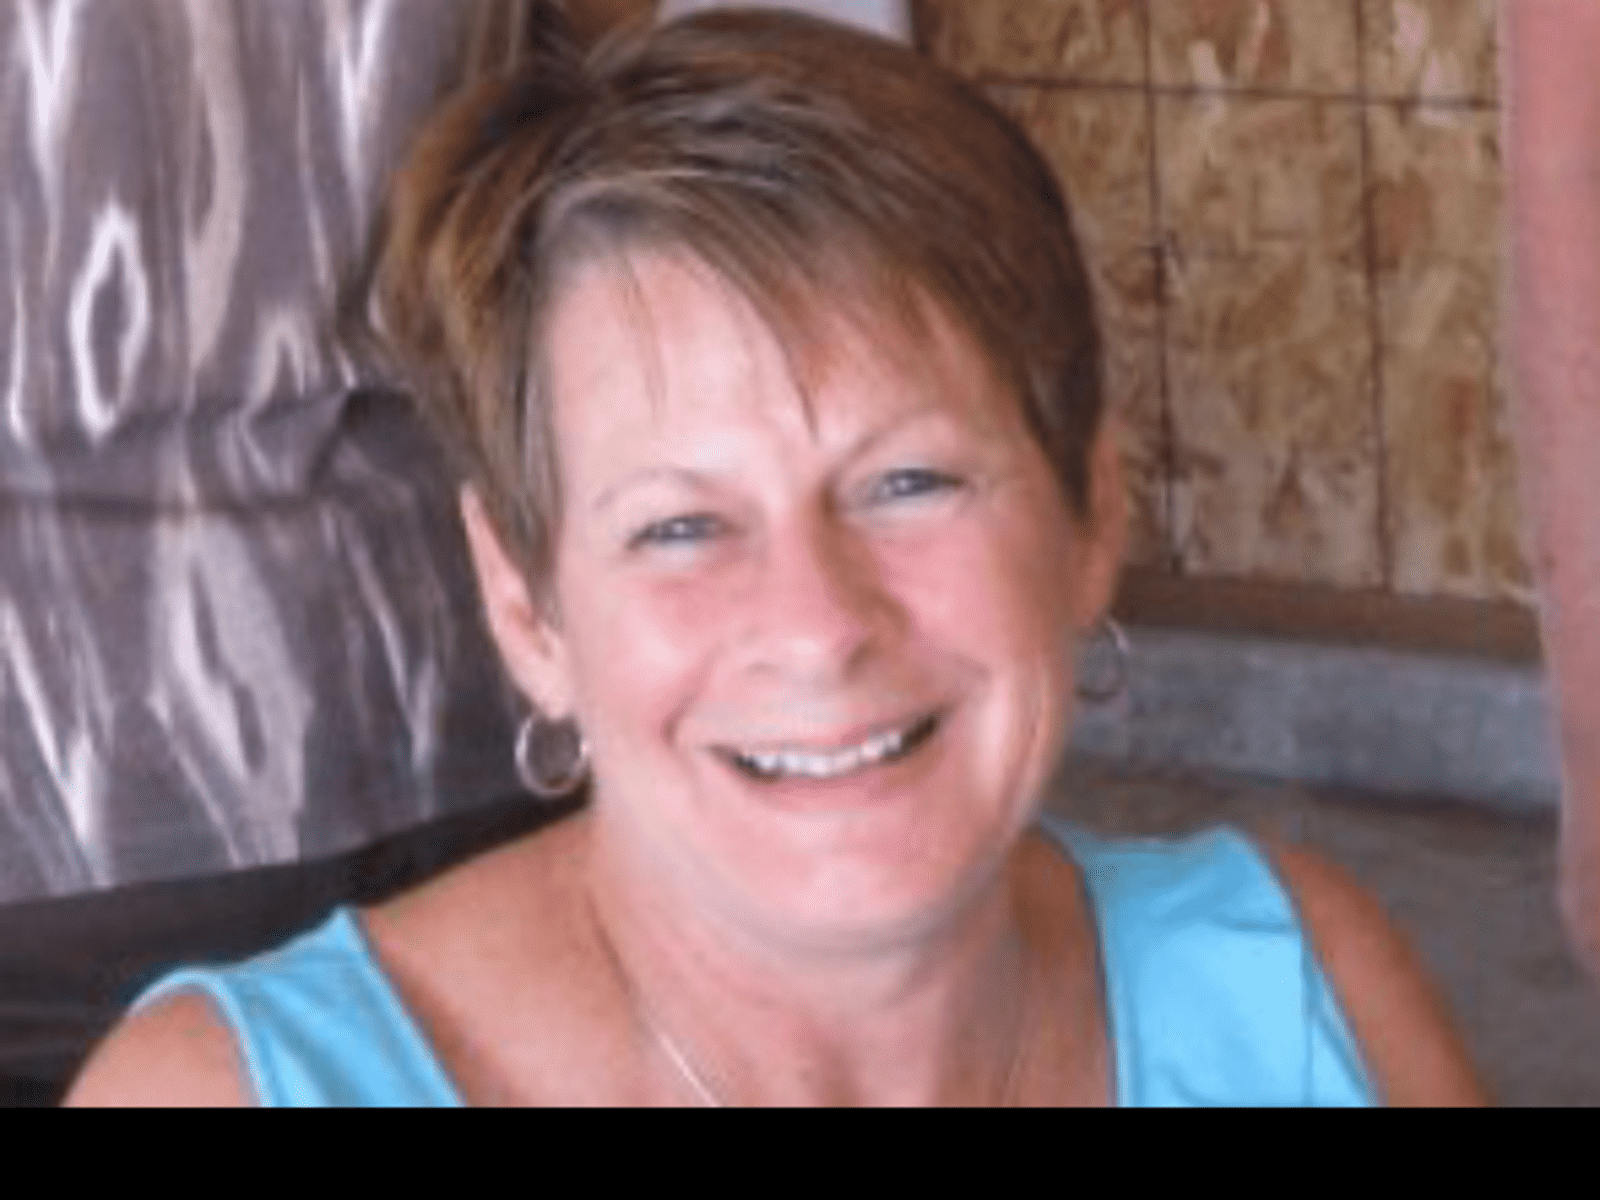 Jo anne (jody) from Greencastle, Indiana, United States